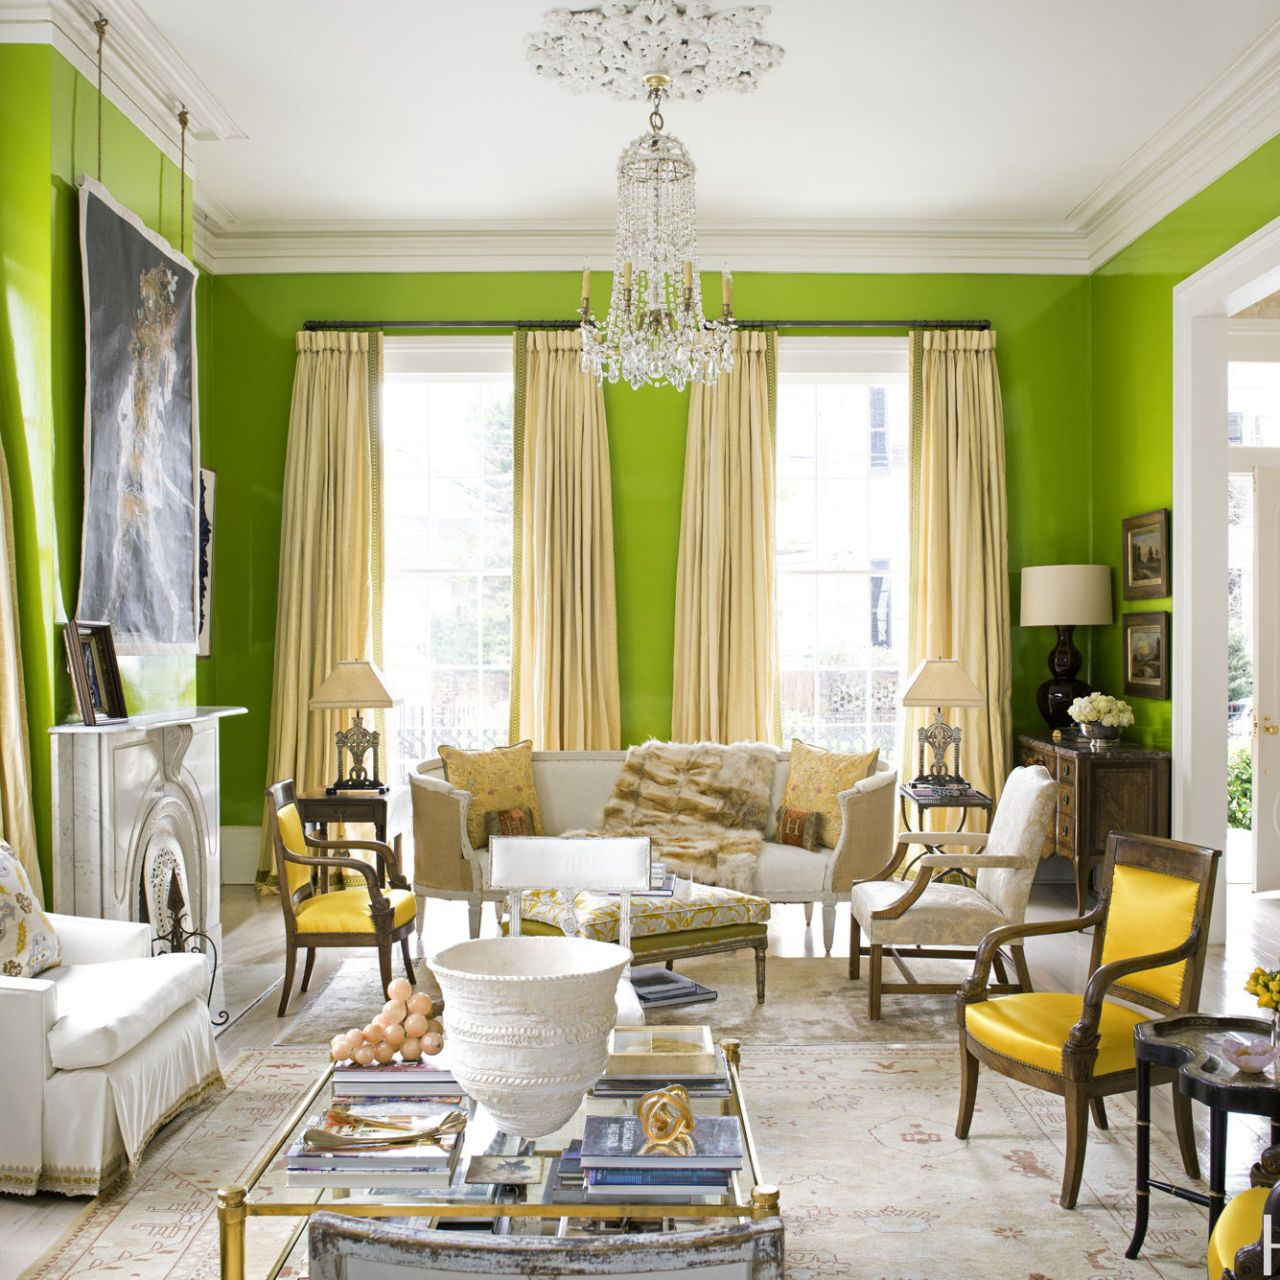 image & 10 Sage Green Paint Colors That Bring Peace and Calm - Best Sage ...